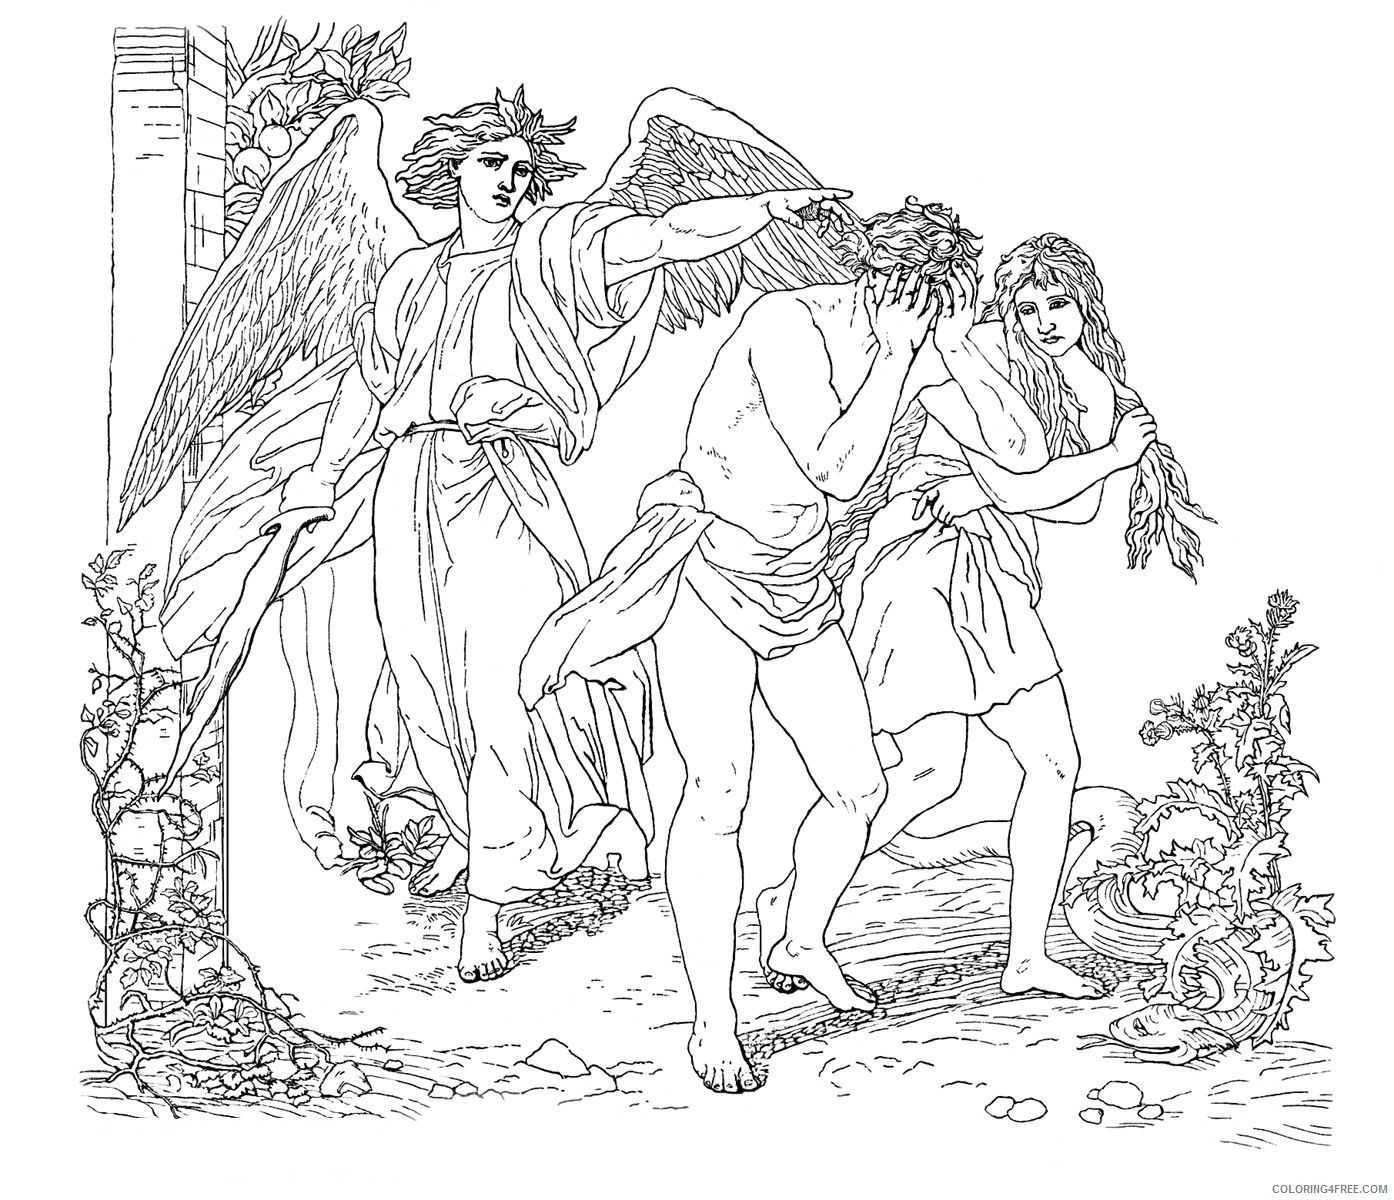 adam and eve coloring pages expelled from eden Coloring4free